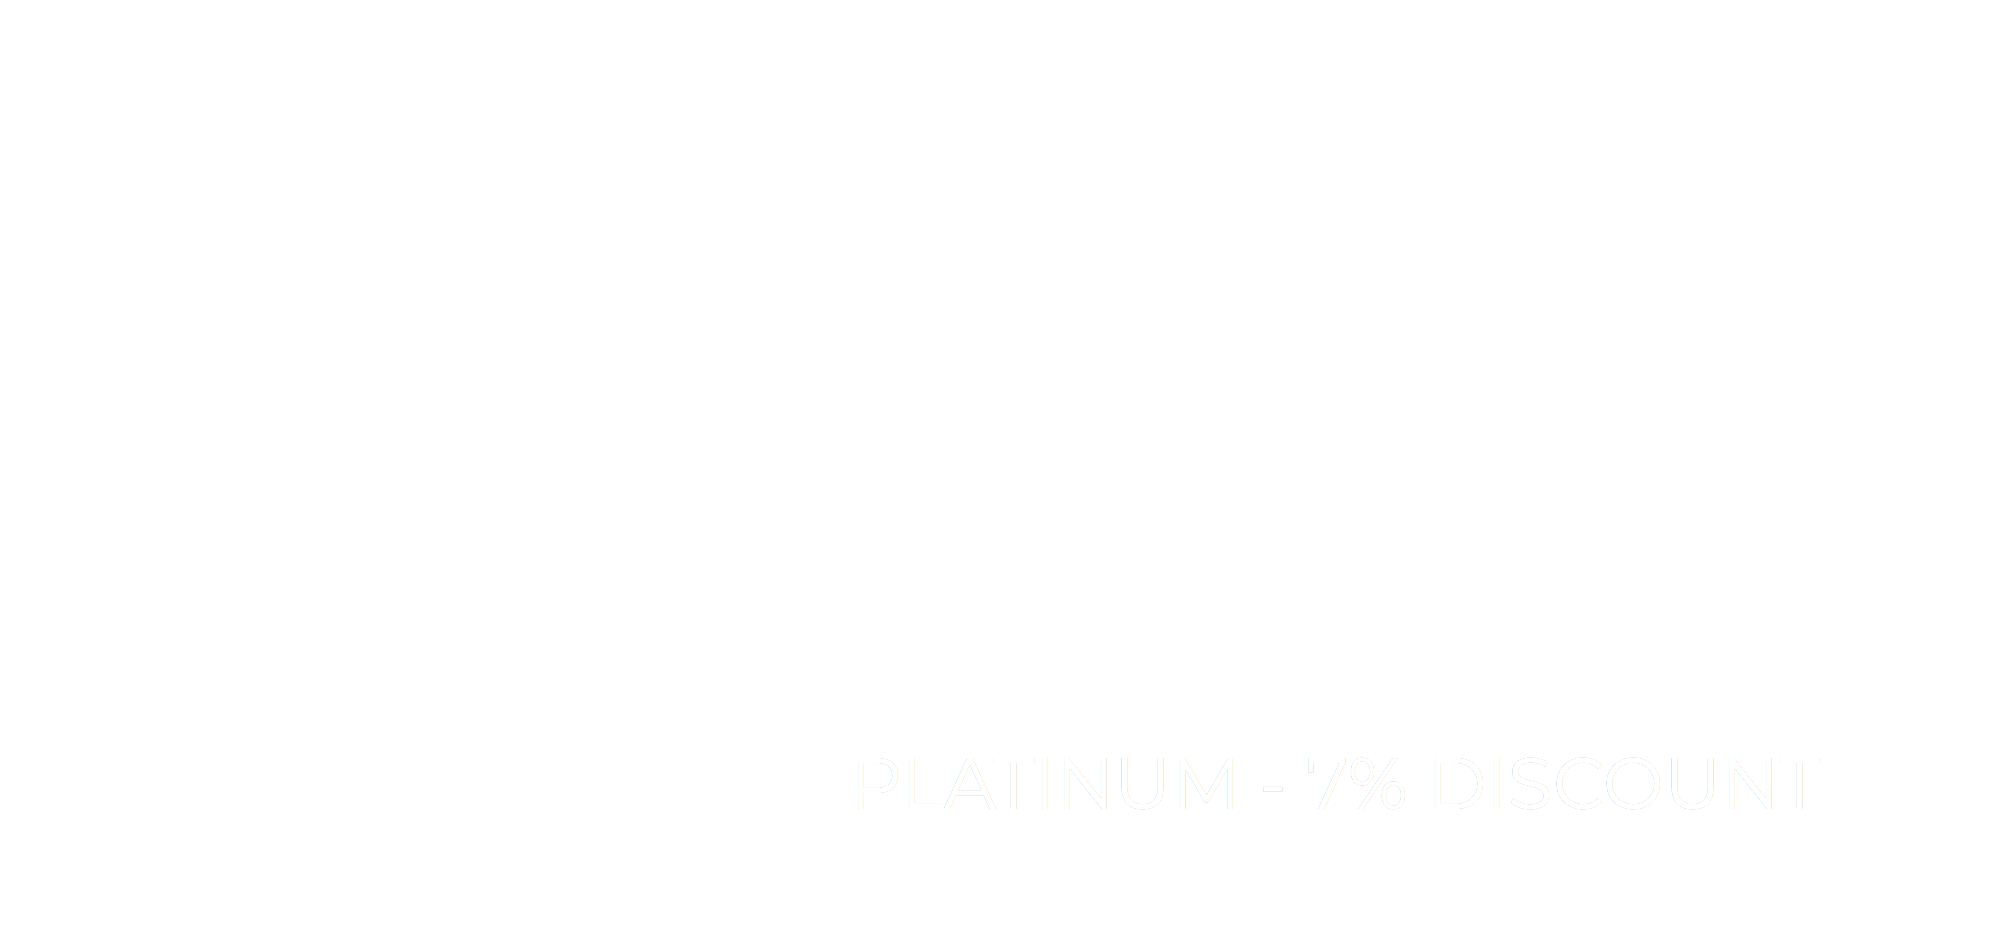 PACKAGE 3 - £795-logo-white.png